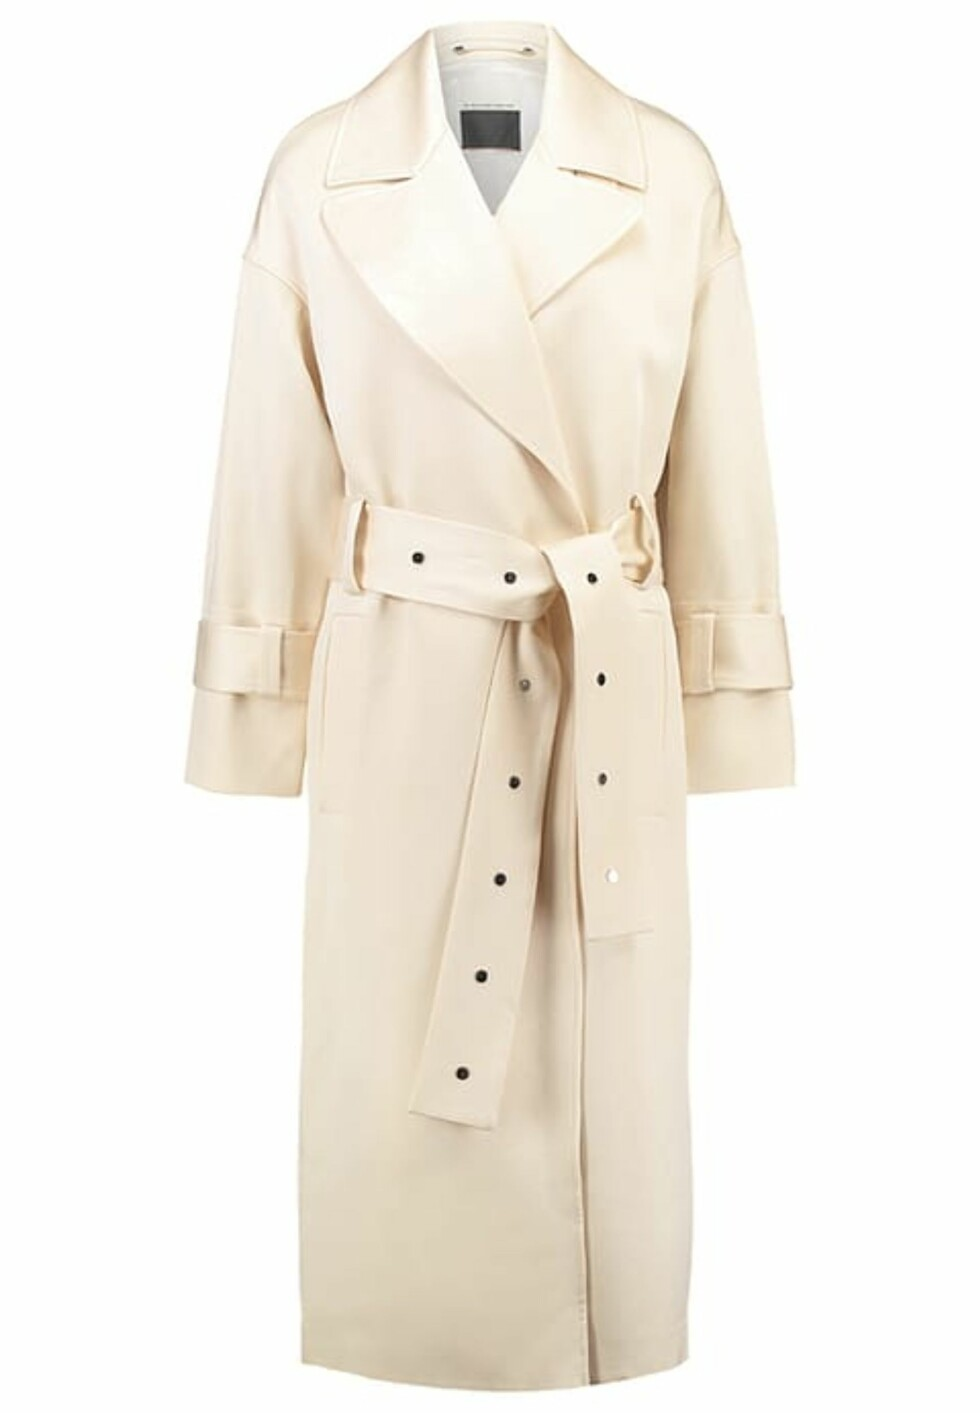 Kåpe fra By Malene Birger via Zalando.no | kr 4335 | https://www.zalando.no/by-malene-birger-fatale-trenchcoat-angora-by121h00i-b11.html